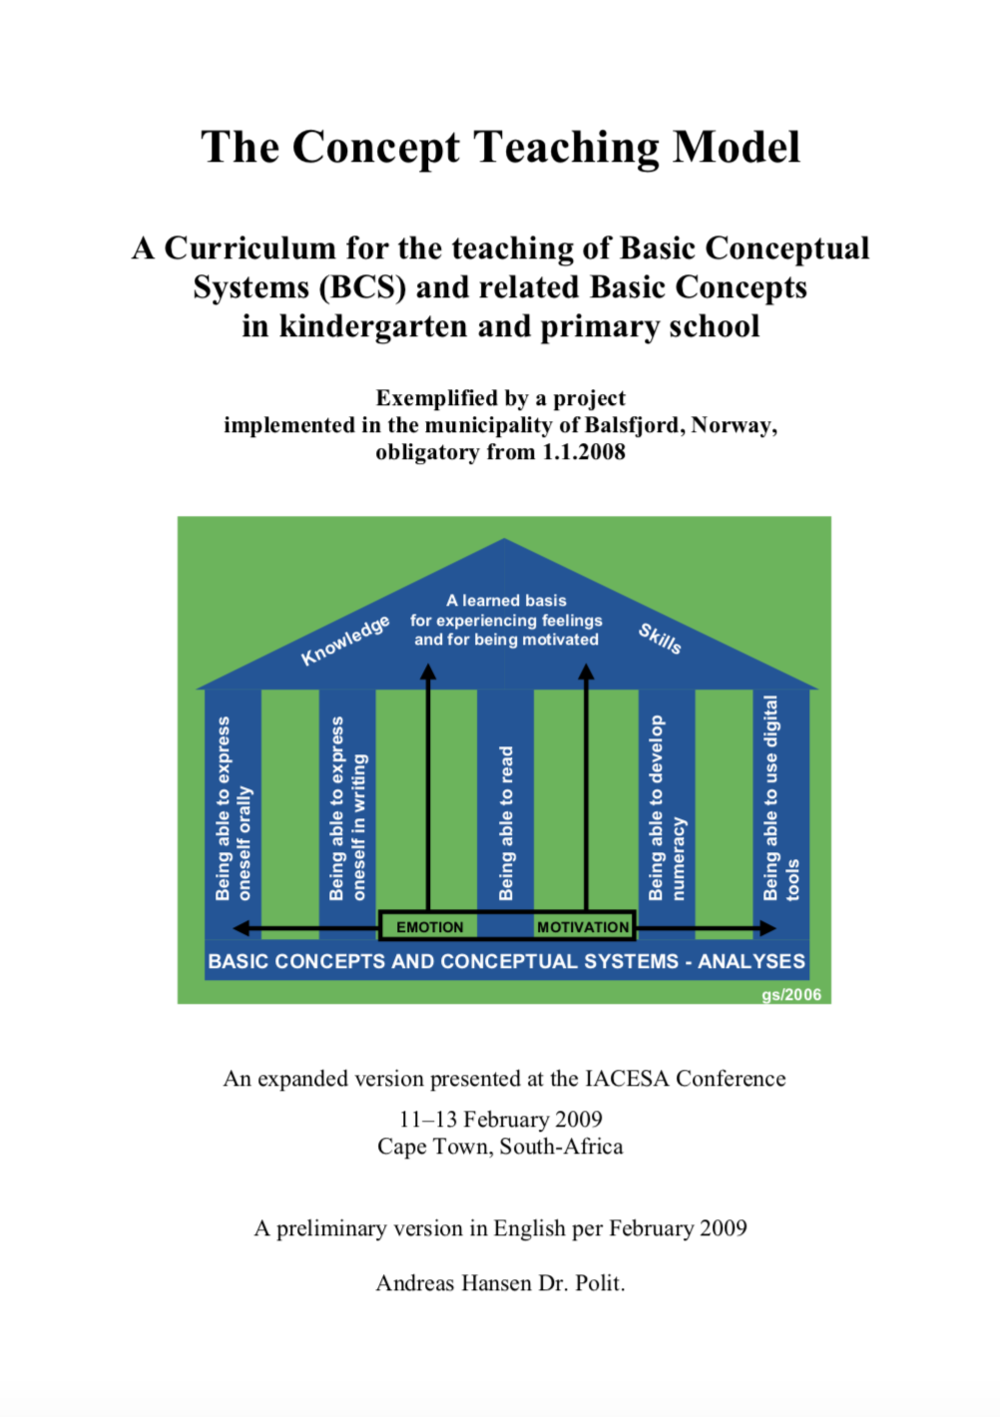 The Concept Teaching Model. - A Curriculum for the teaching of Basic Conceptual Systems (BCSs) in kindergarten and primary school(Hansen, 2009).